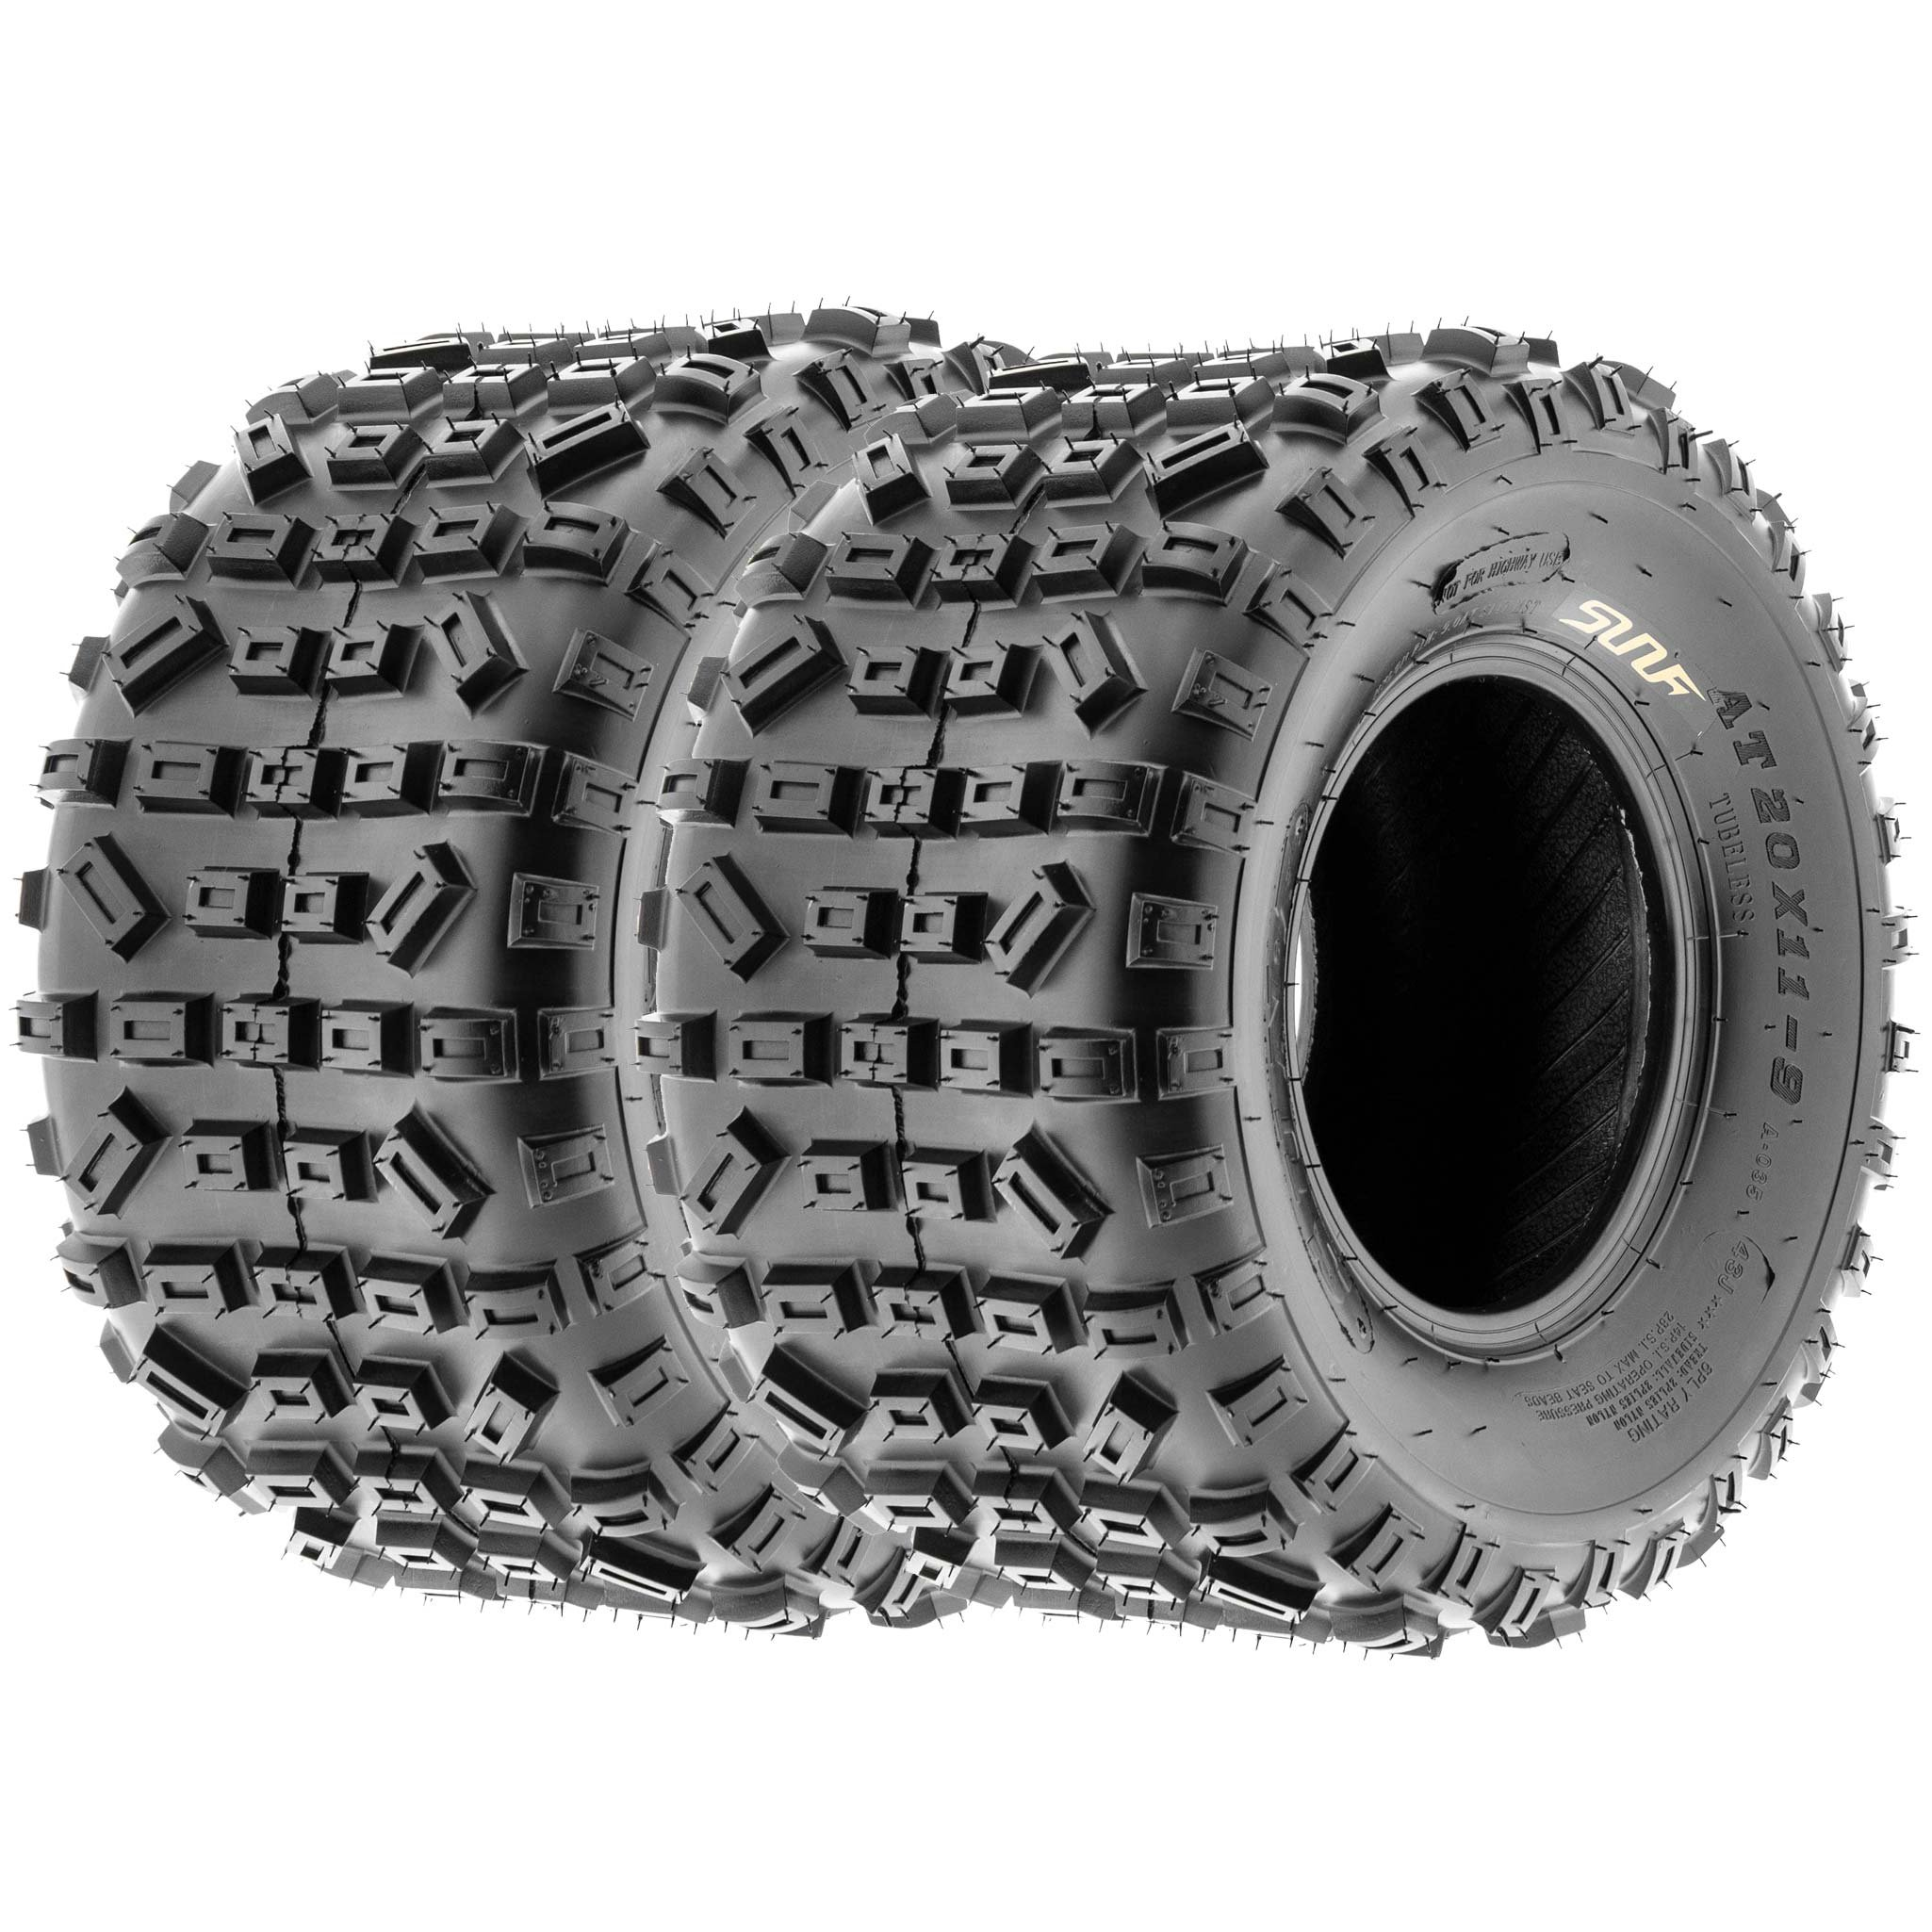 SunF 20x11-9 20x11x9 ATV UTV All Terrain Trail Replacement 6 PR Tubeless Tires A035, [Set of 2]